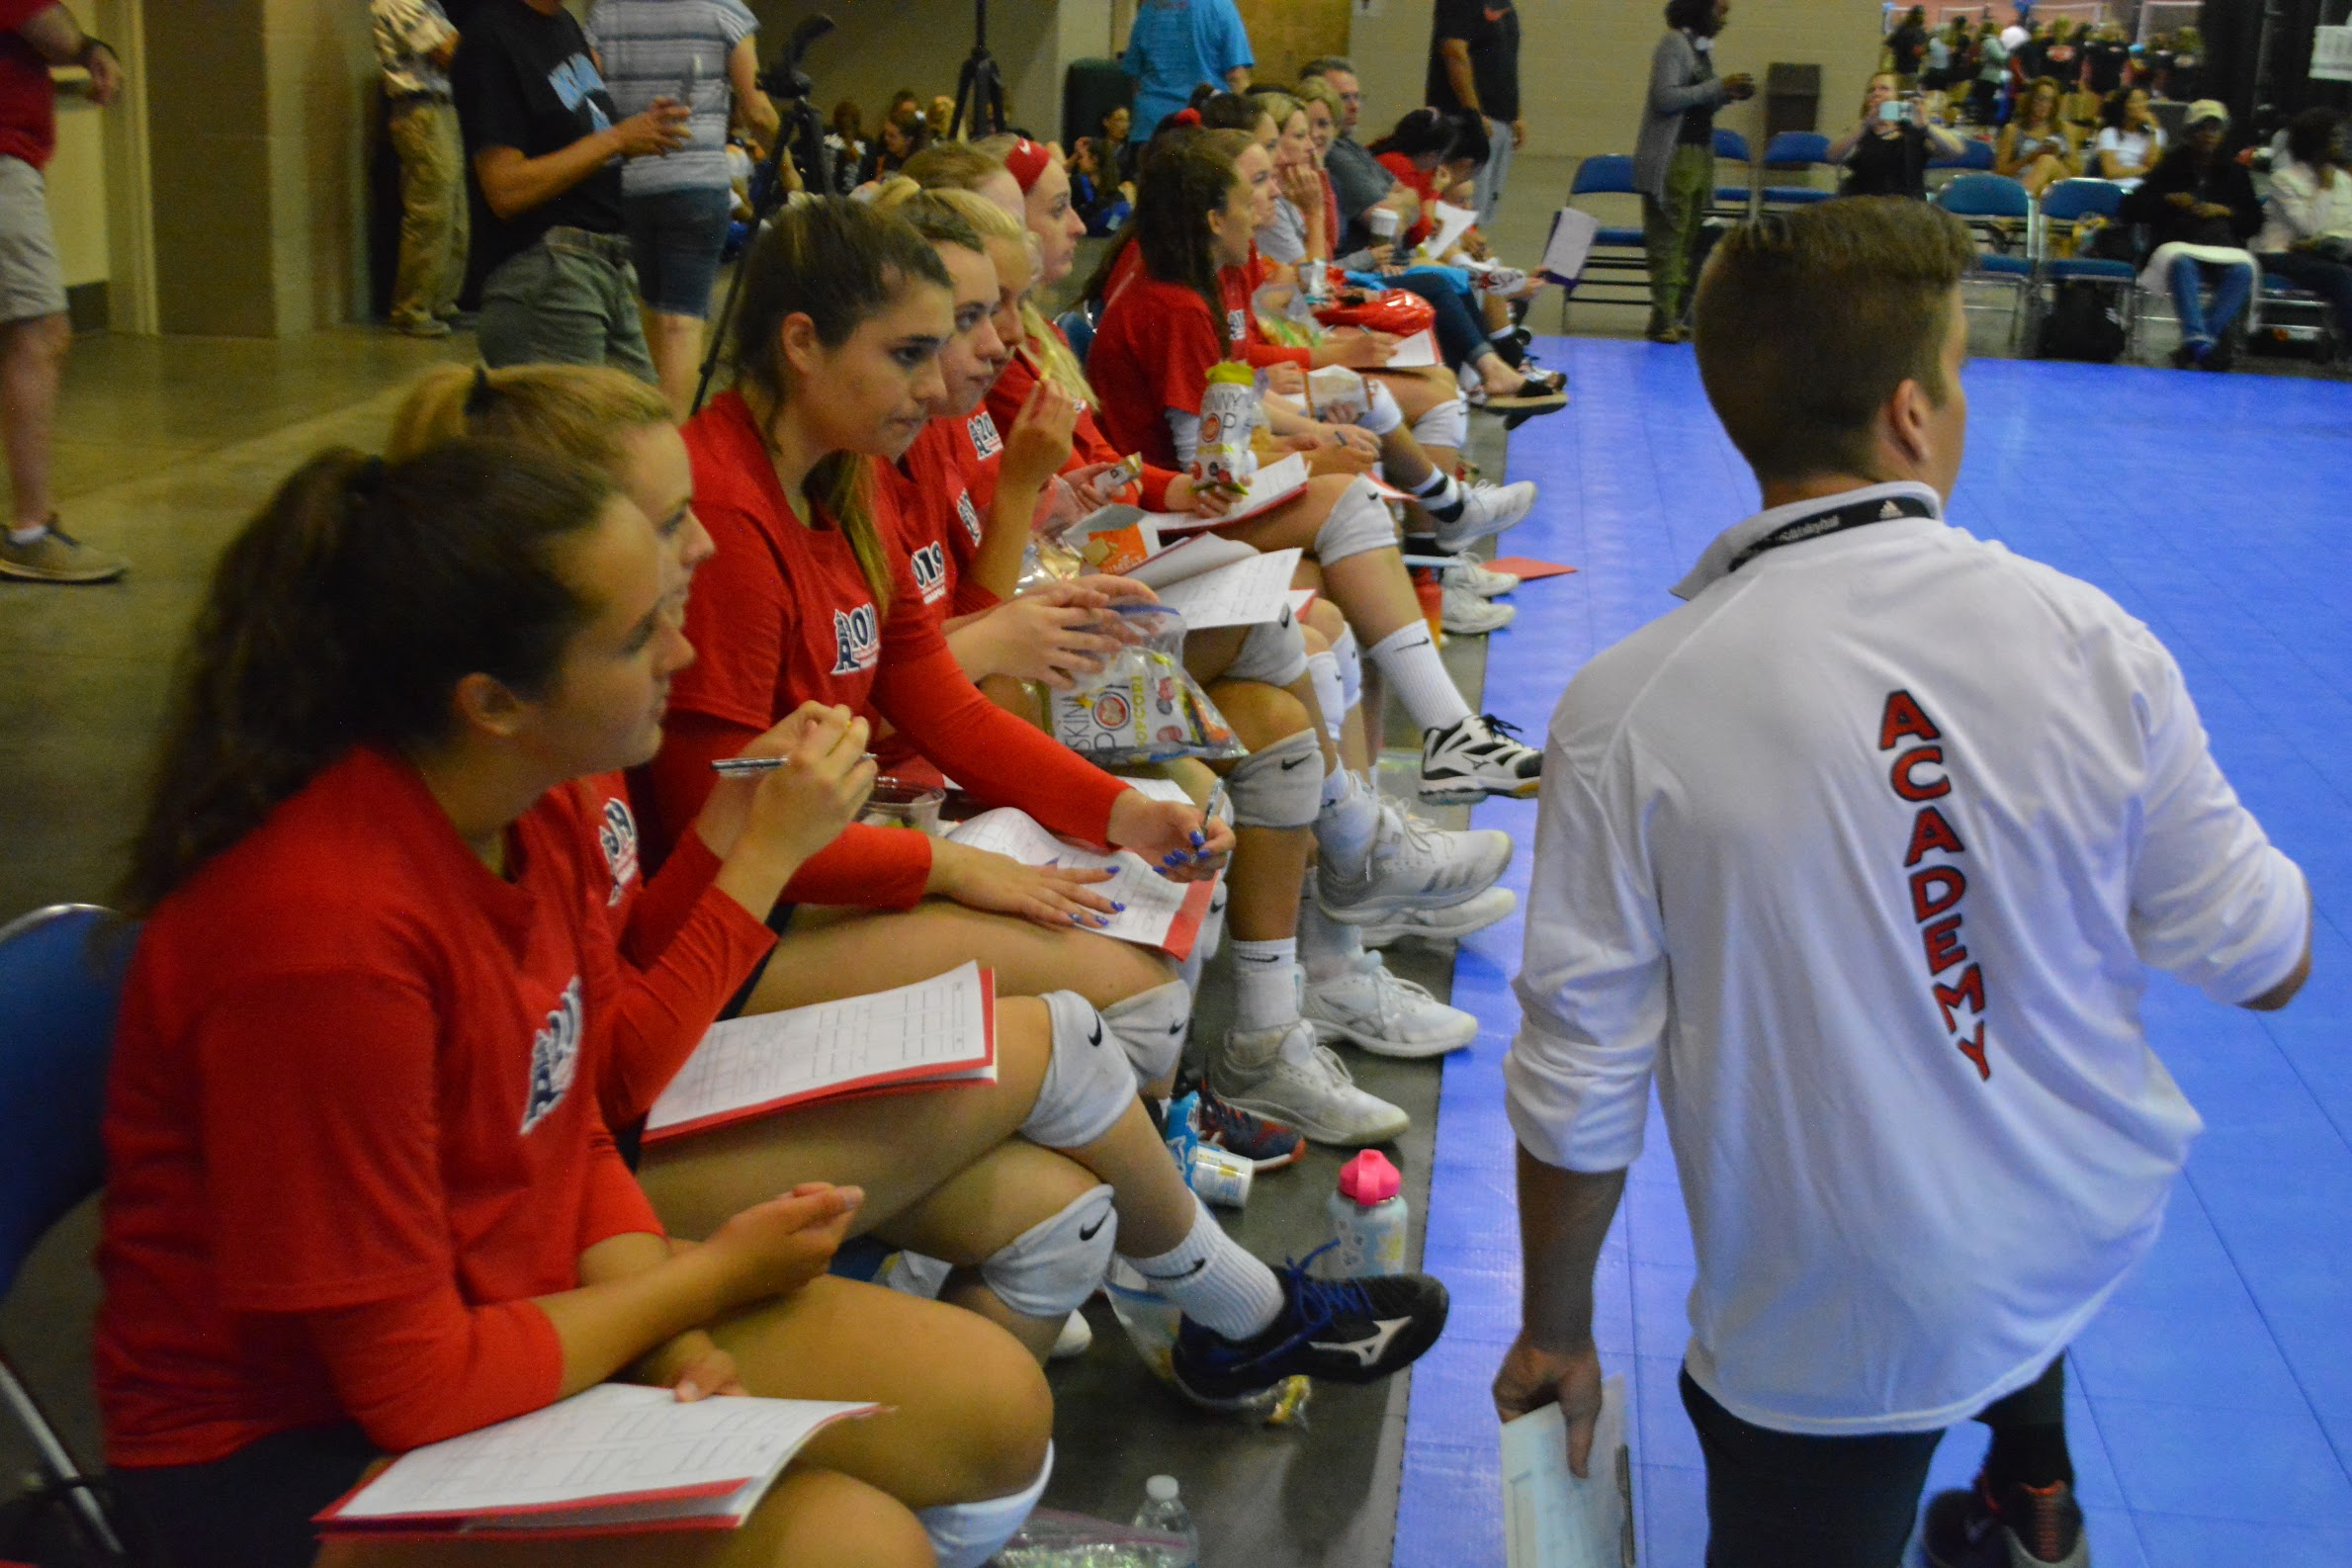 Girls 17 Red prepare to face a new opponent at Nationals.